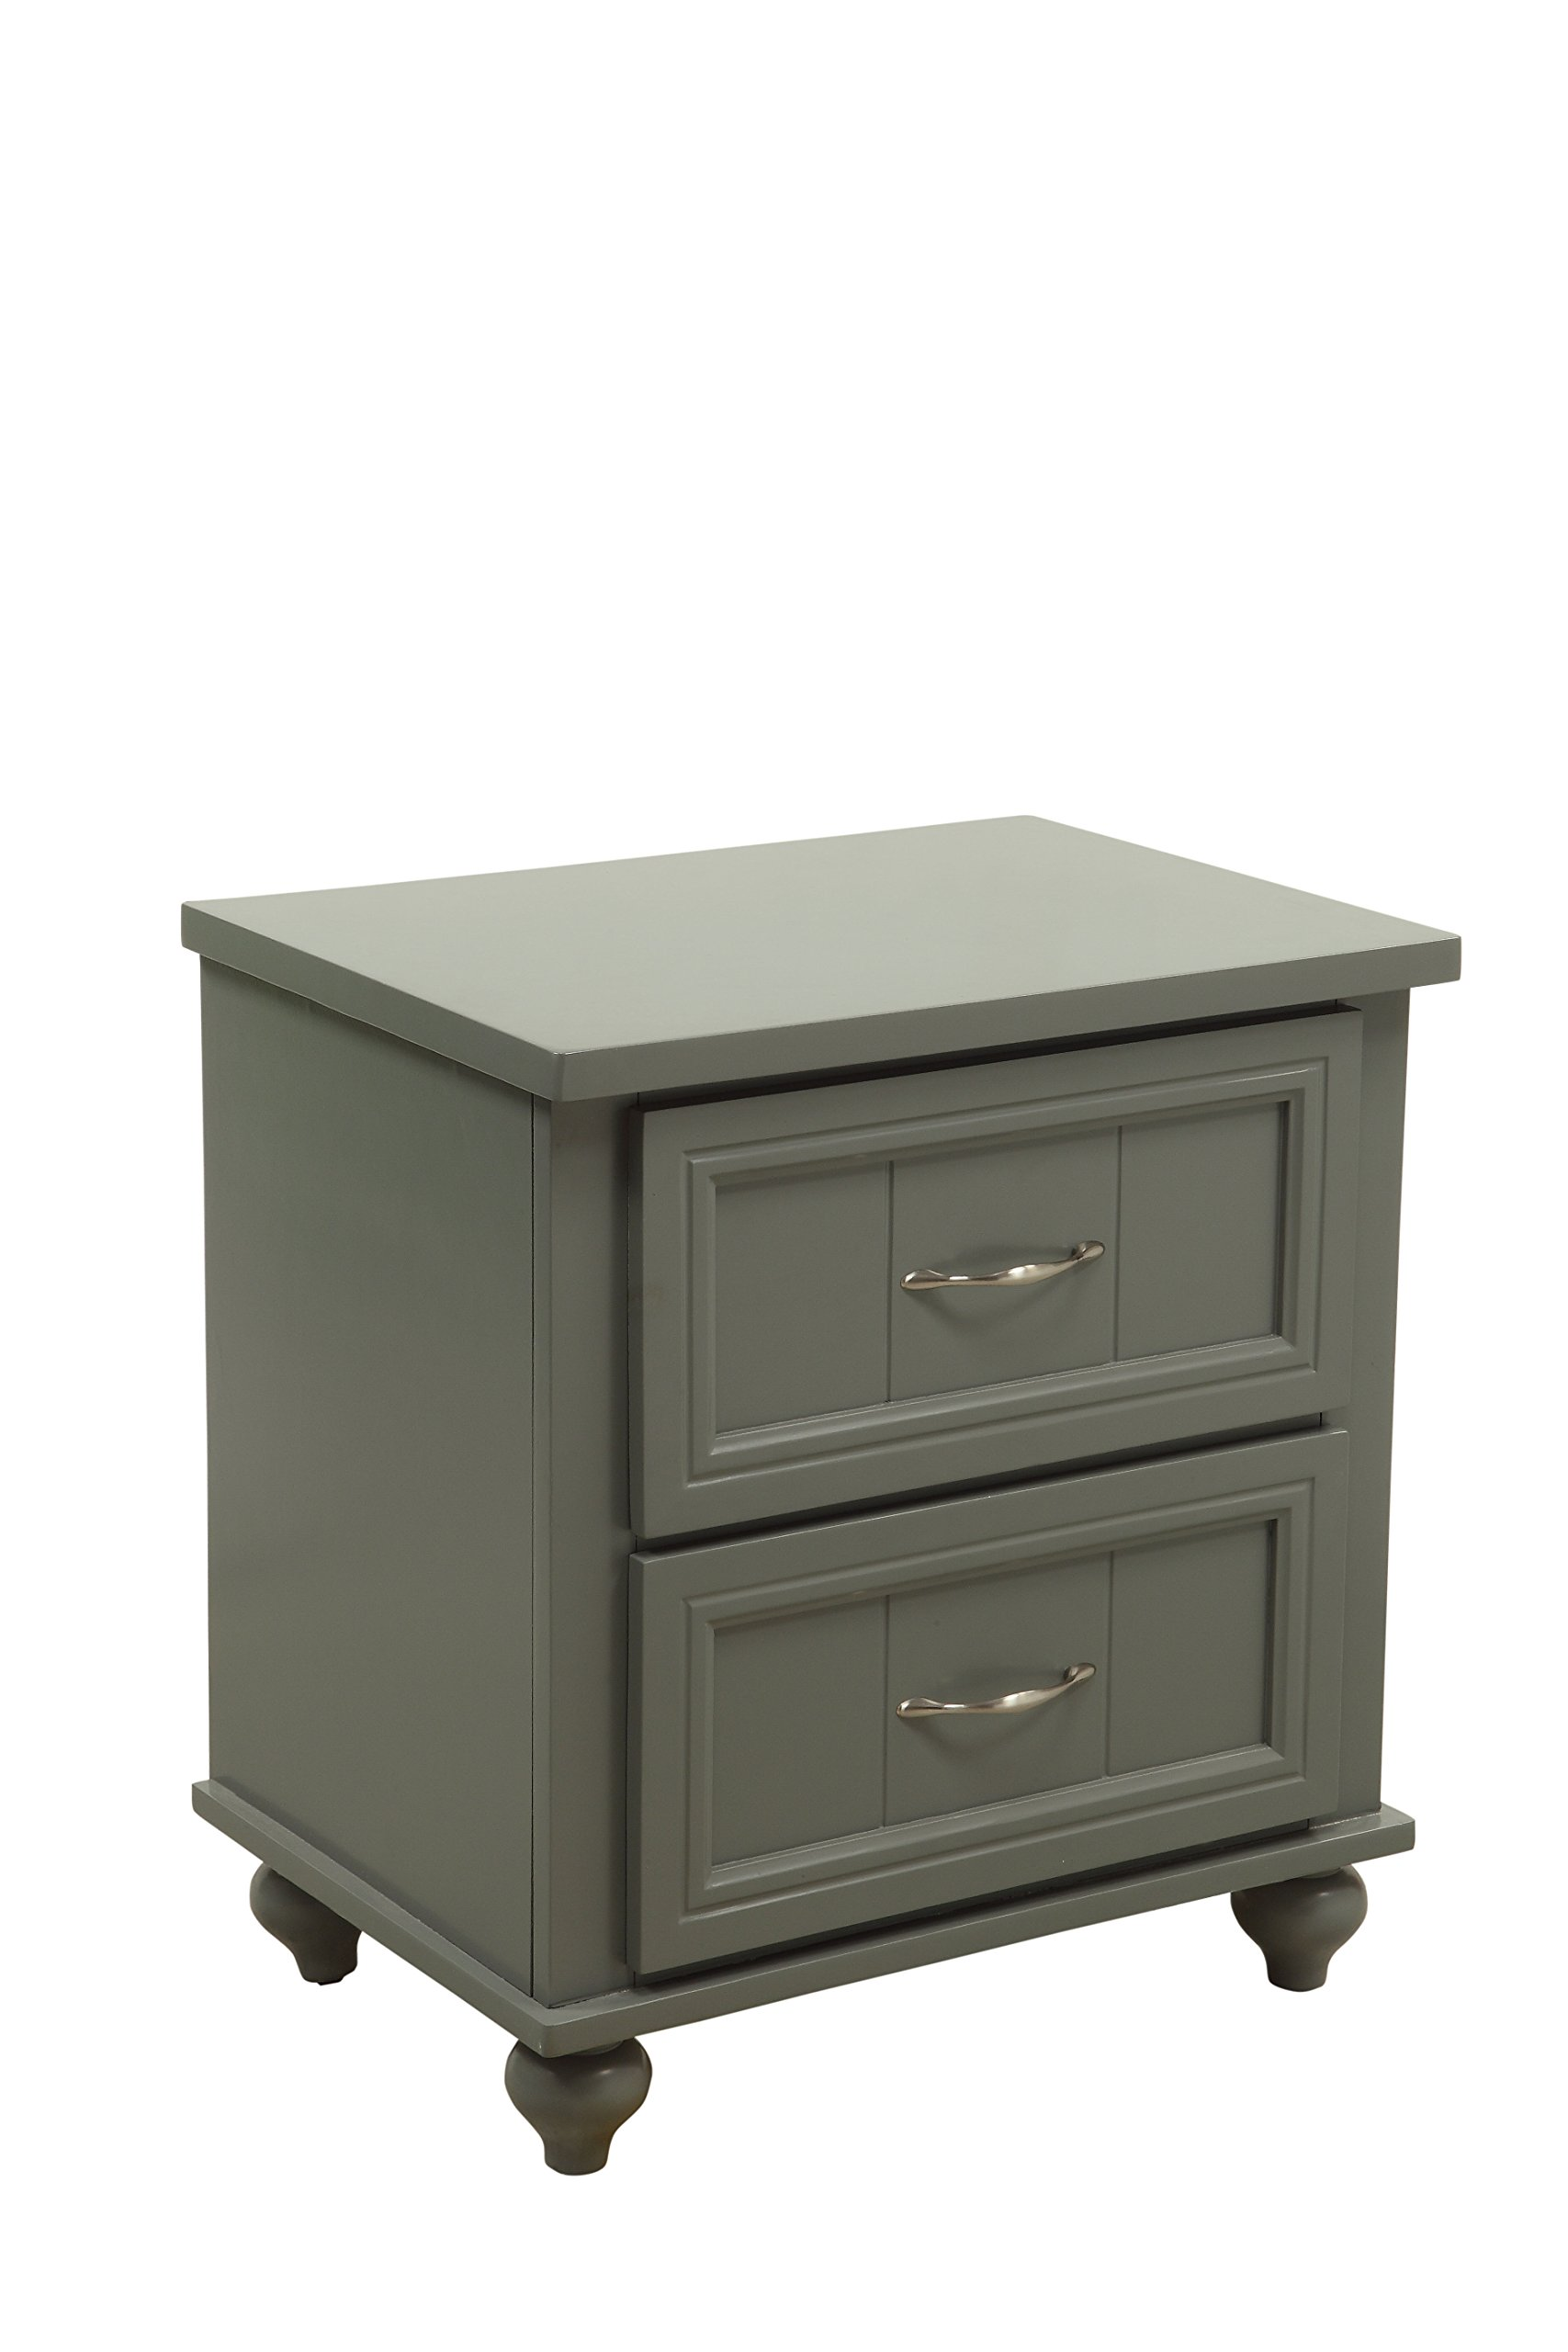 HOMES: Inside + Out Felix Transitional 2-Drawer Nightstand, Gray